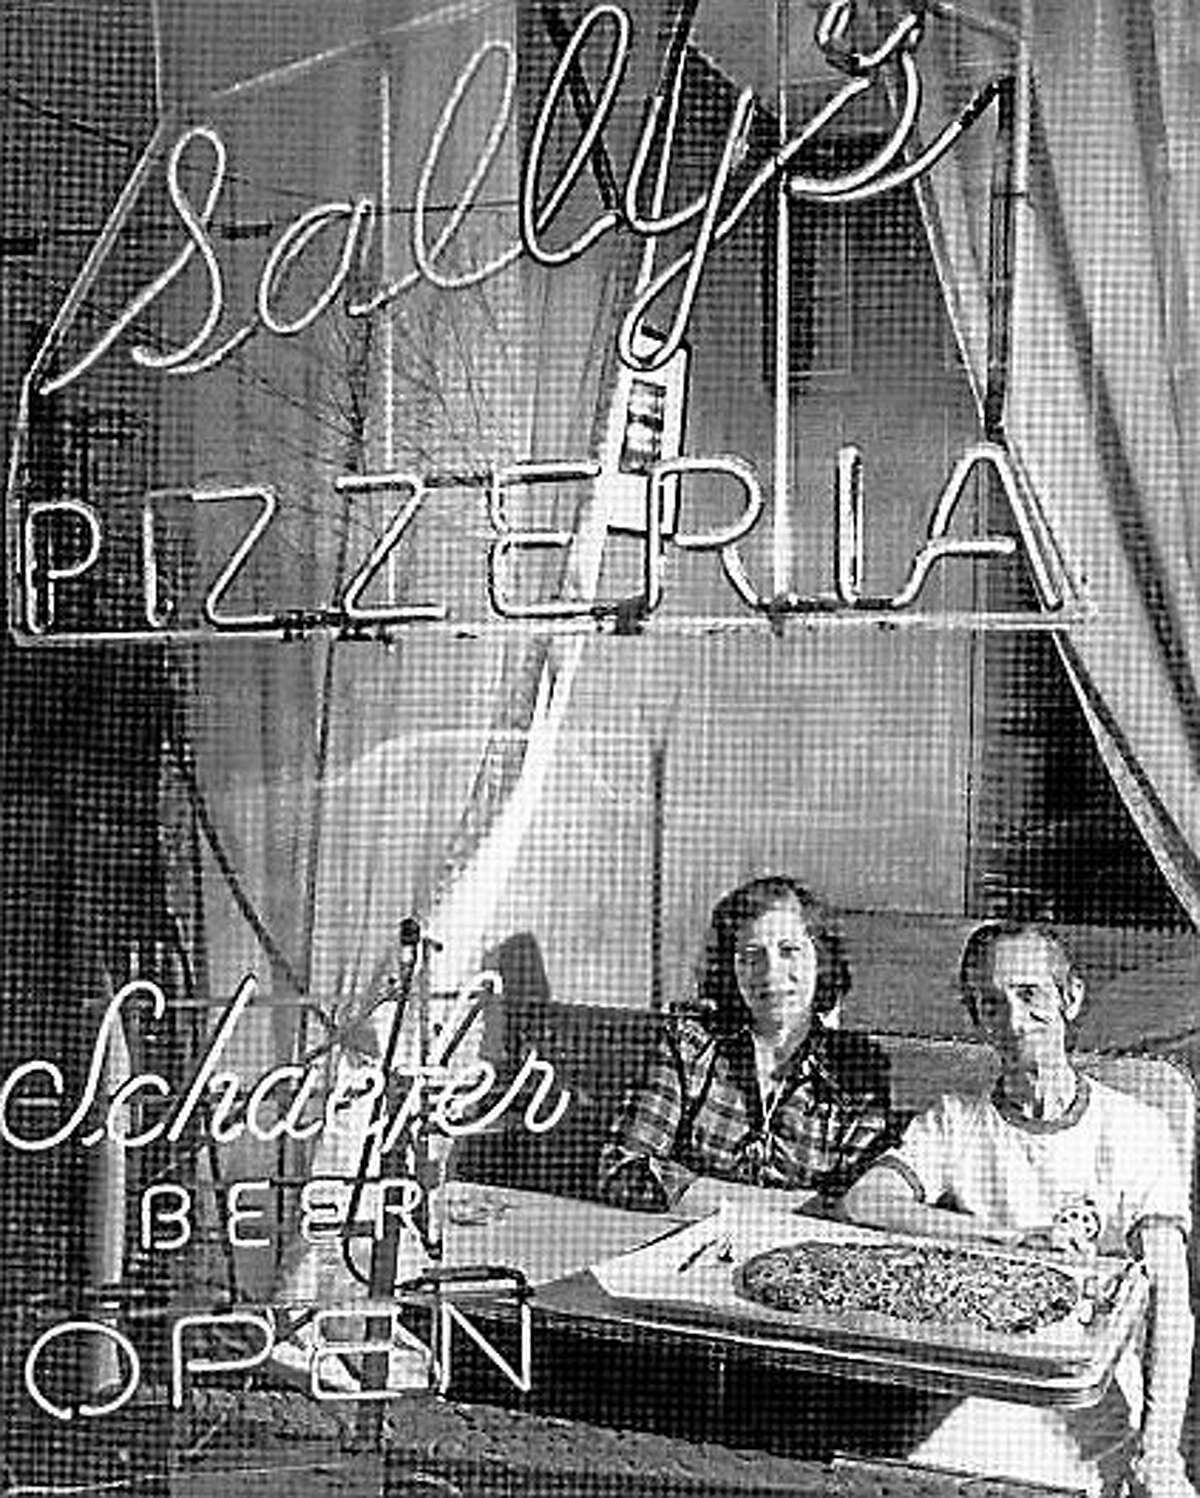 A vintage photo of the late Flo Consiglio and the late Sally (Salvatore) Consiglio of Sally's Pizza.